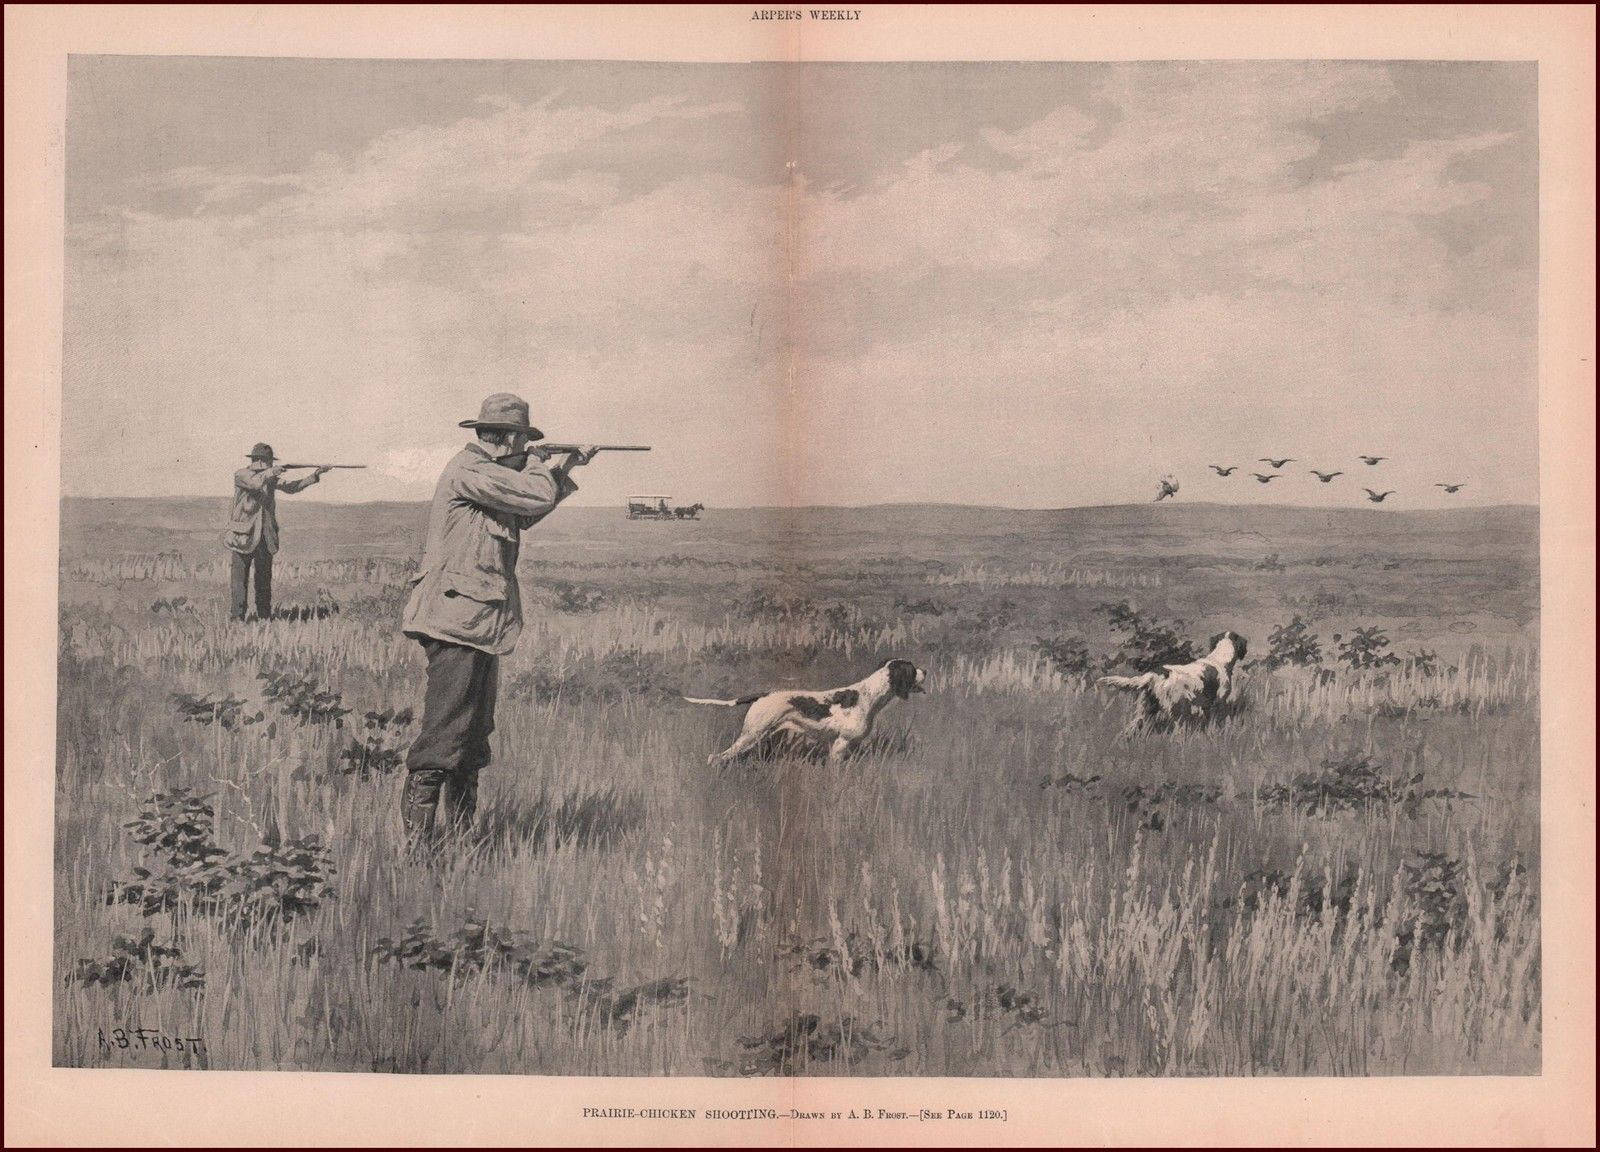 Prairie Chicken Shooting by A.B. Frost